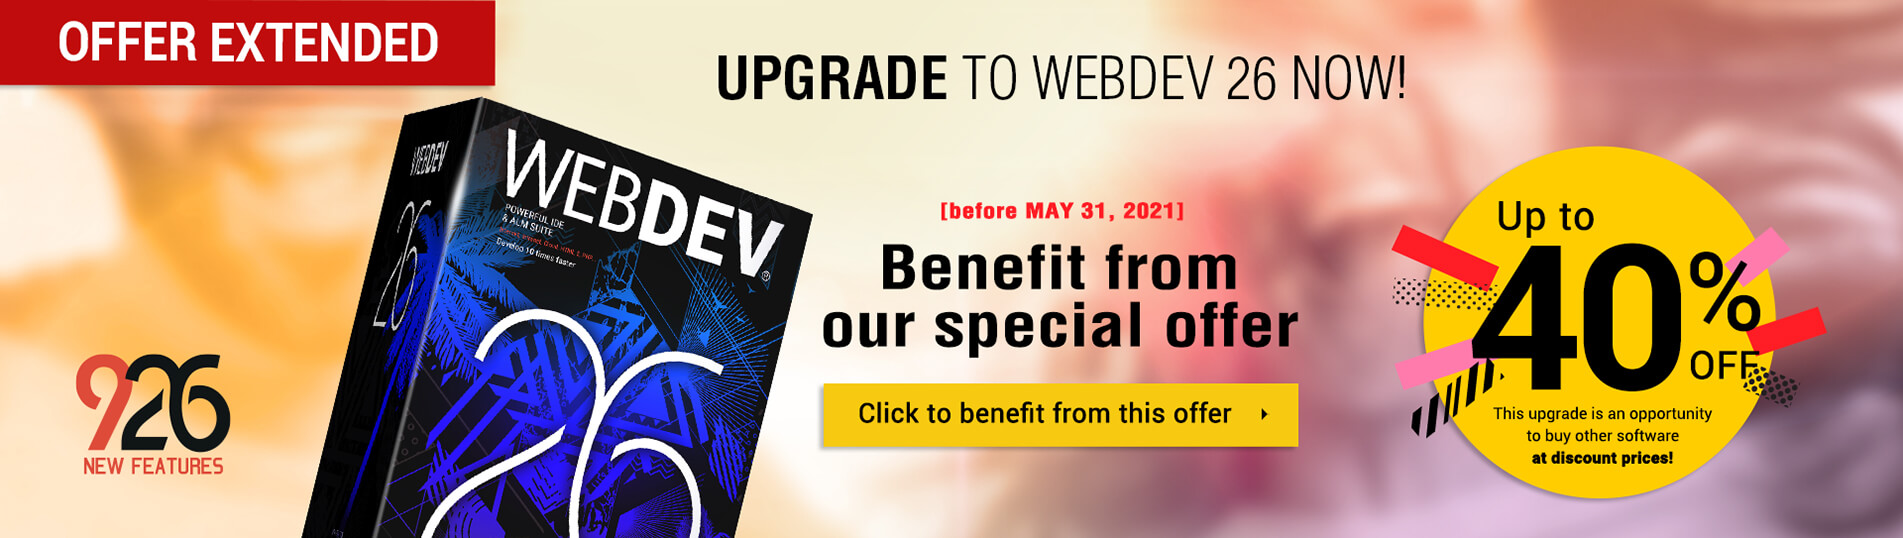 Upgrade to WEBDEV 26 now!